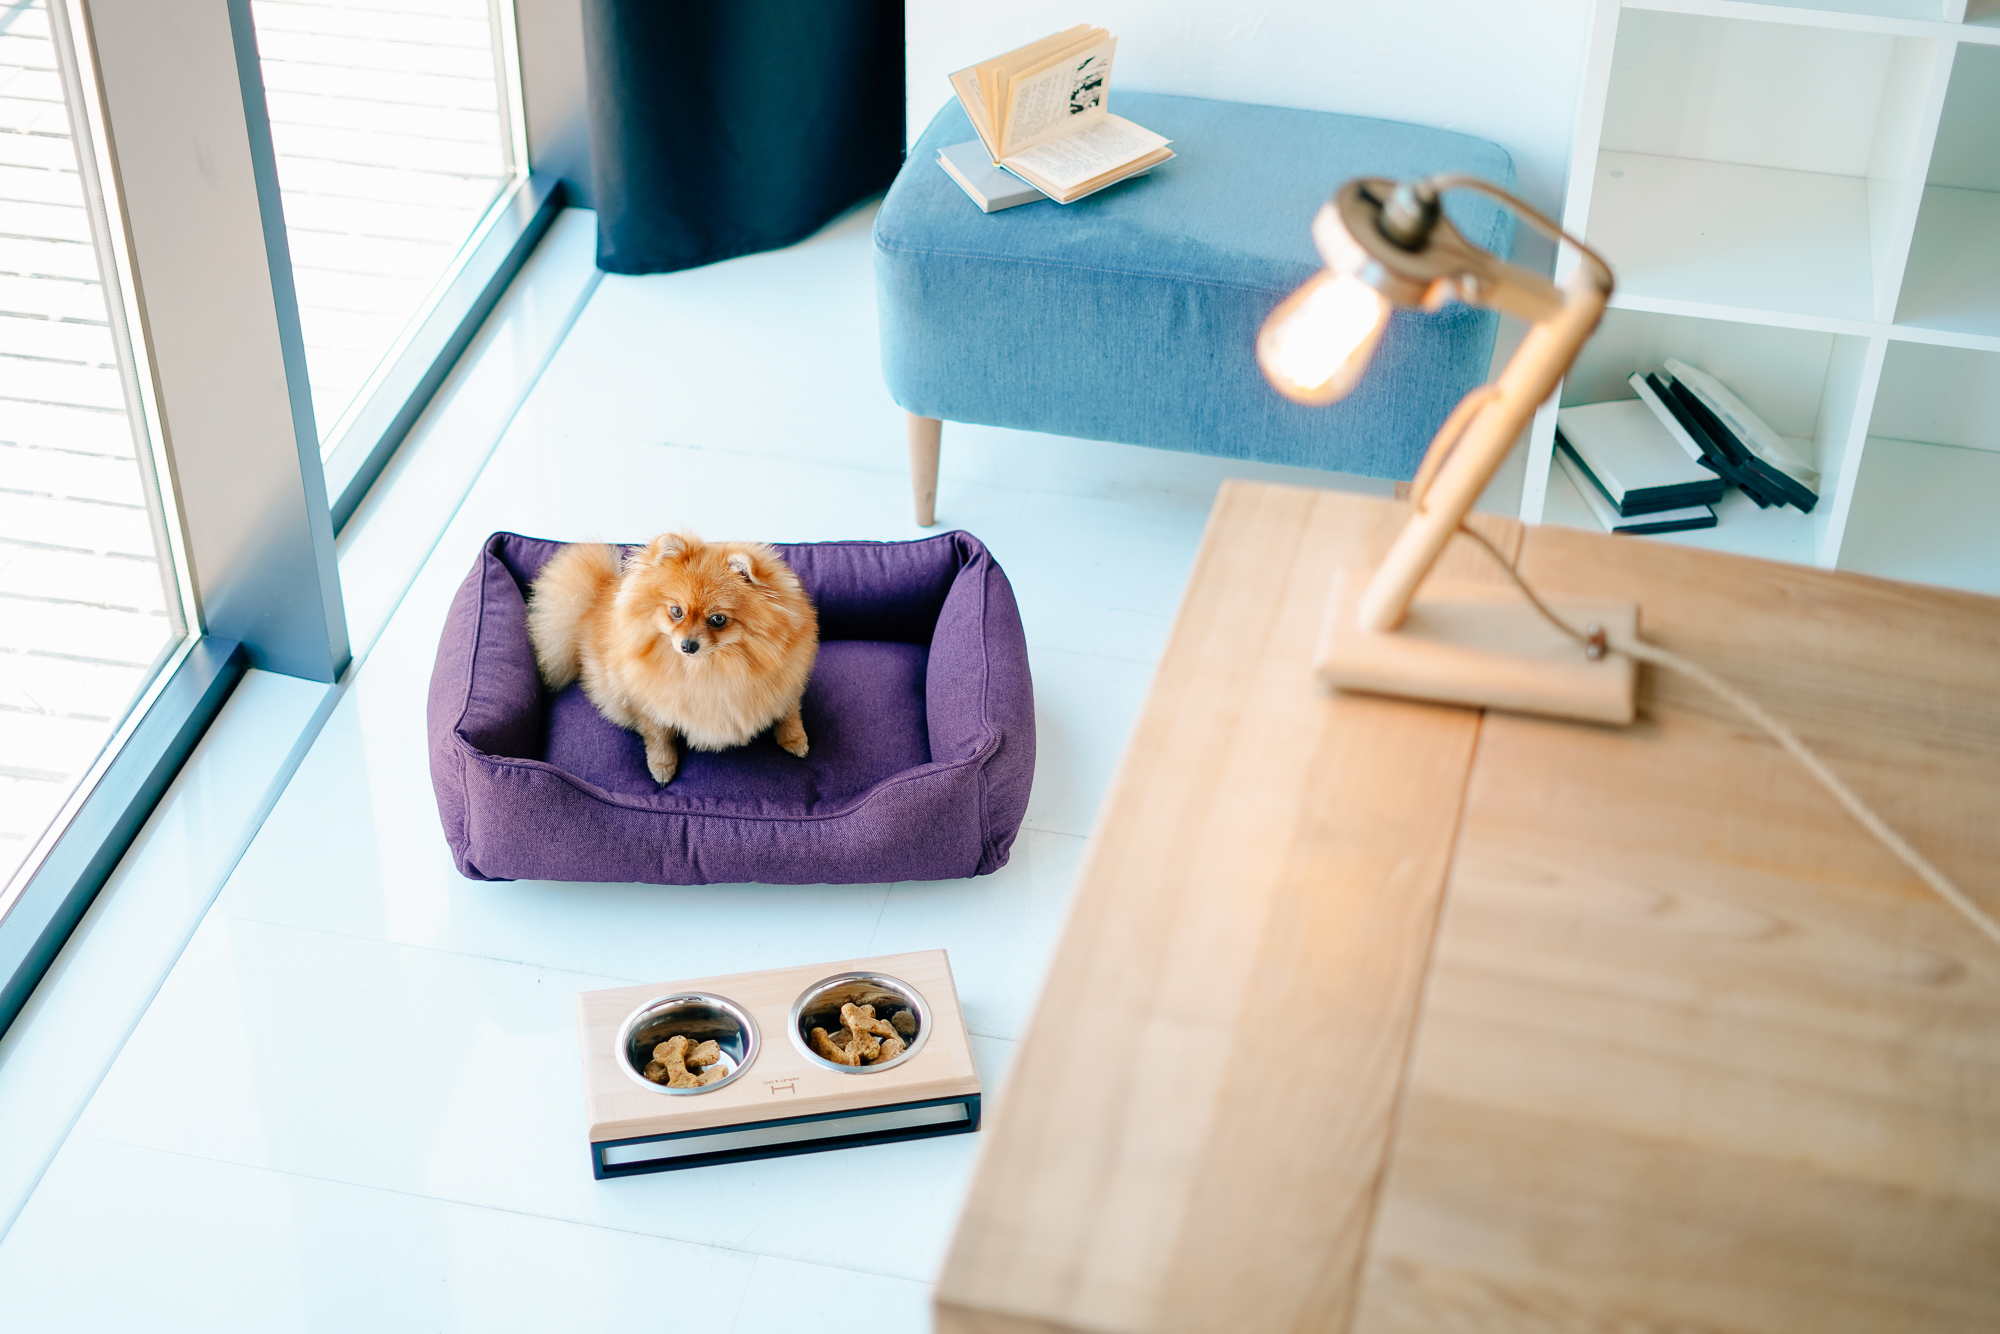 designer furniture and stylish accessories for pets